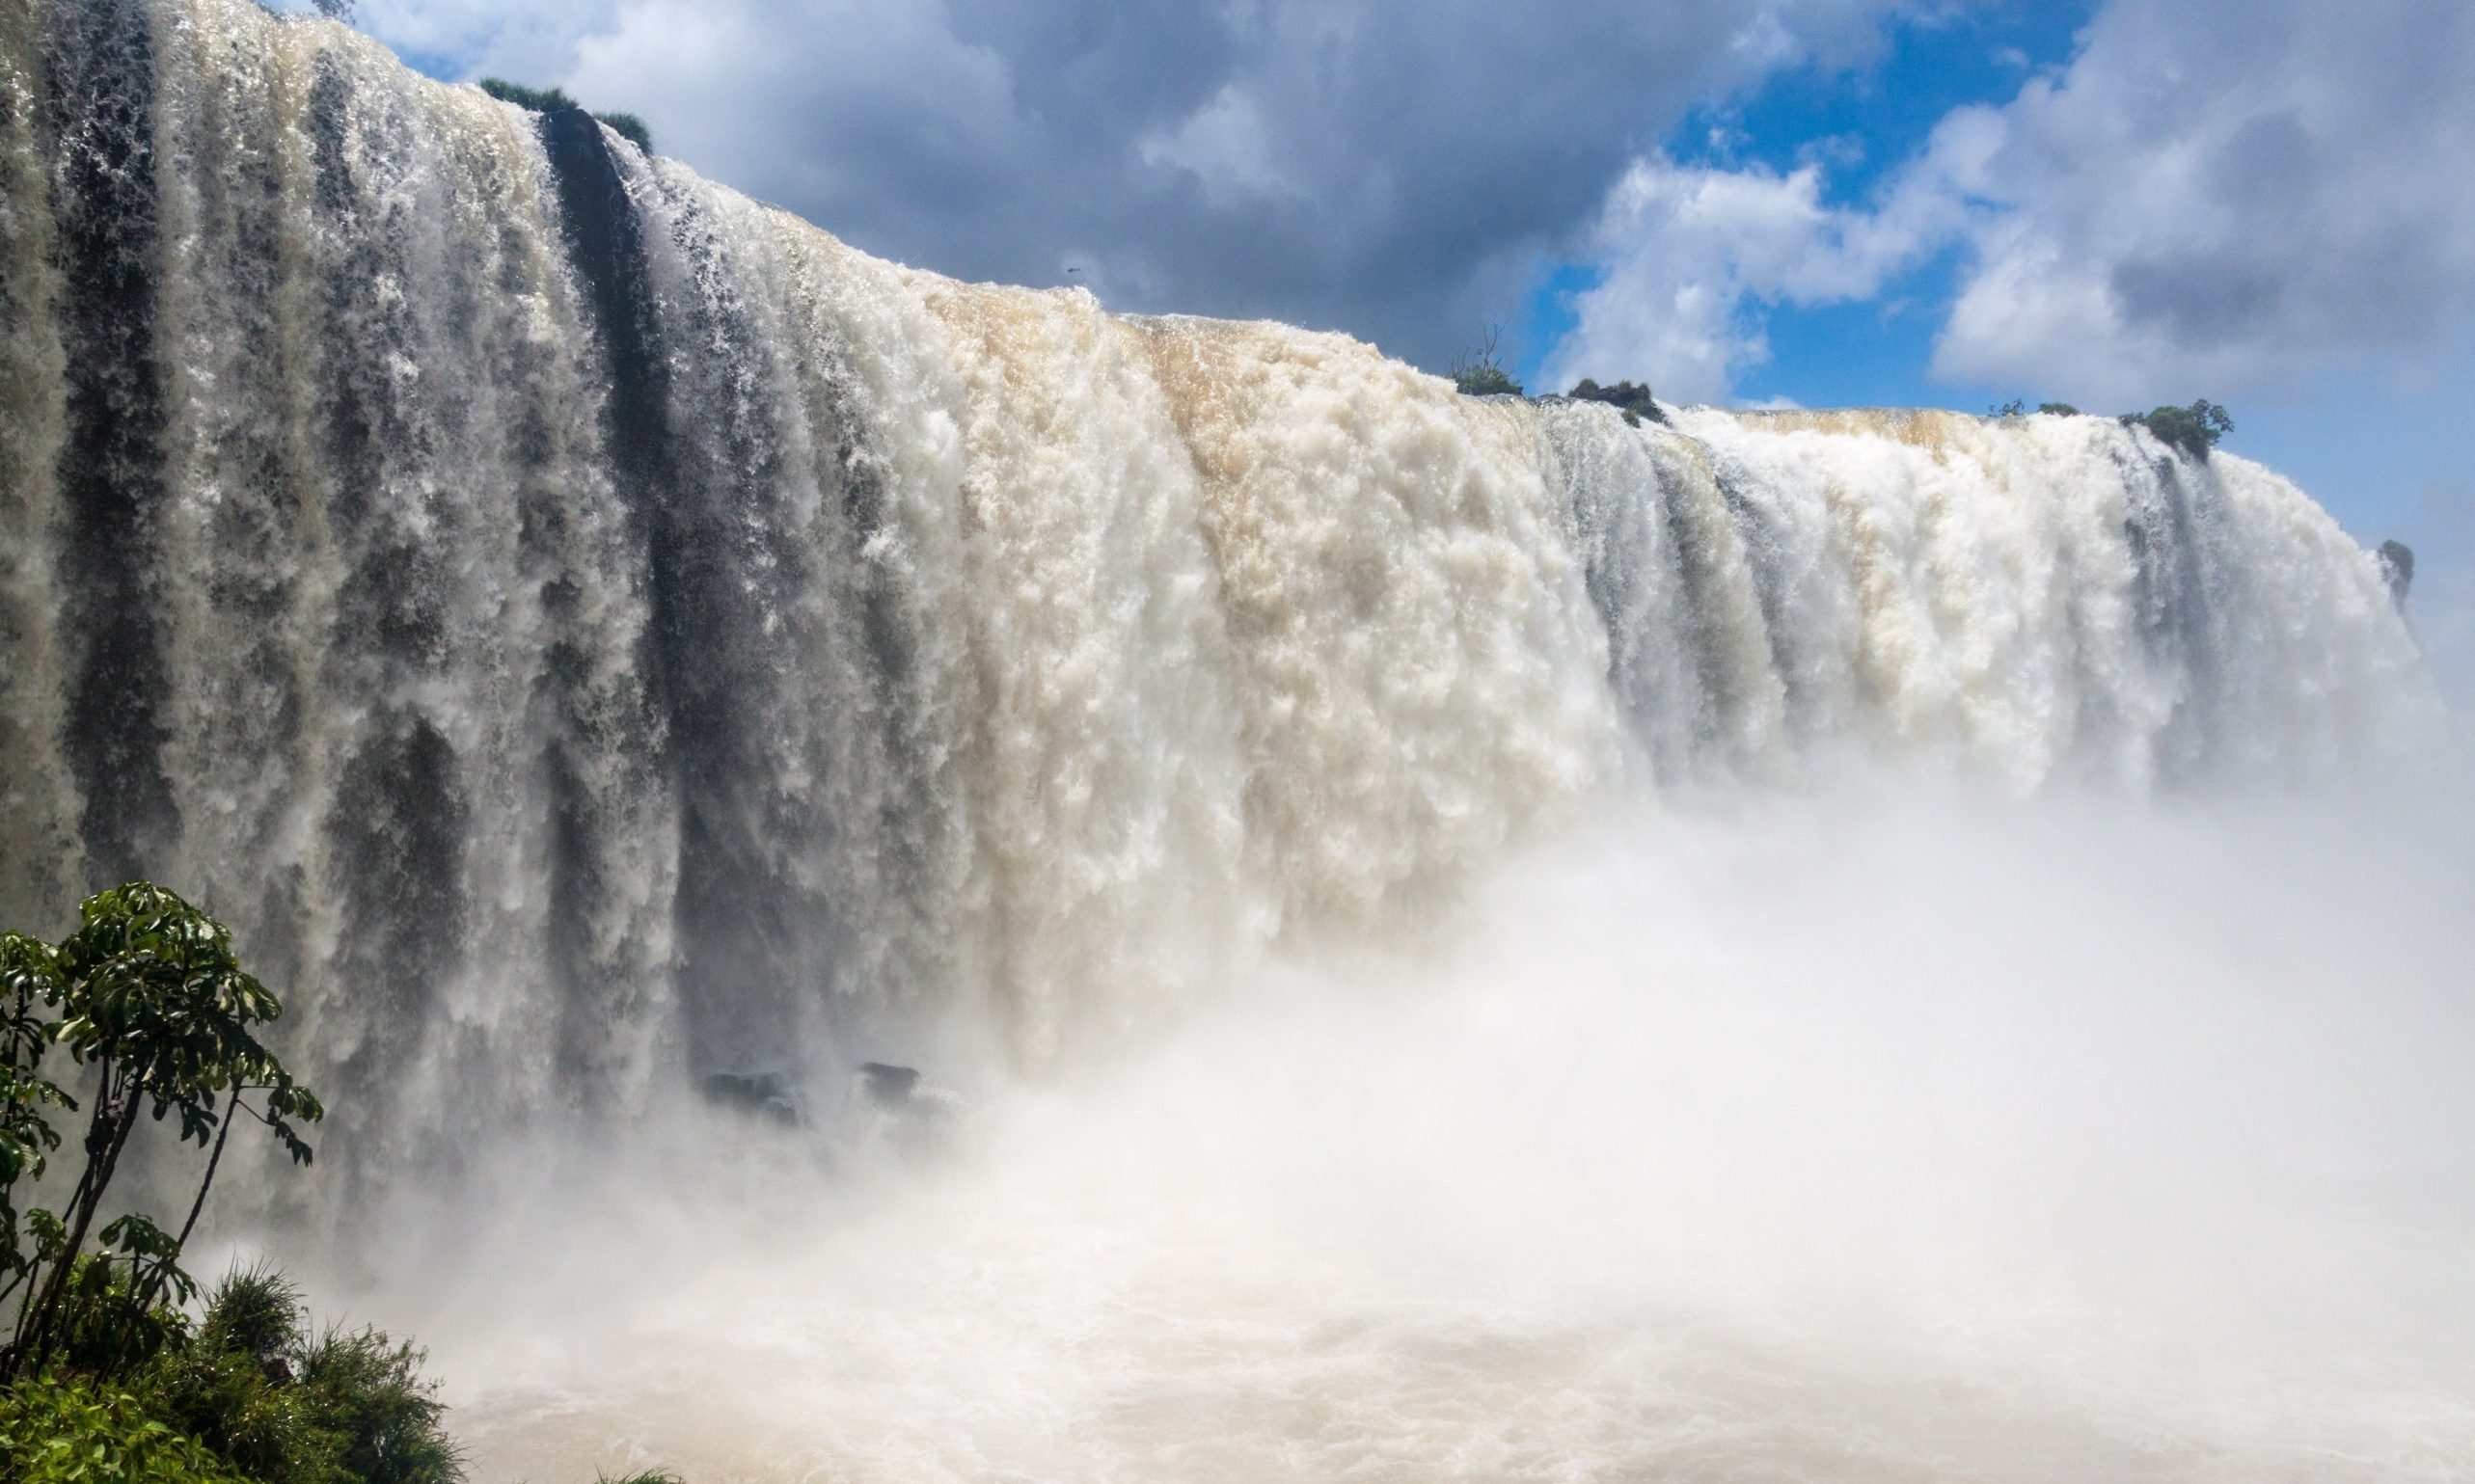 Incredible amounts of water gush over the Iguaçu falls.